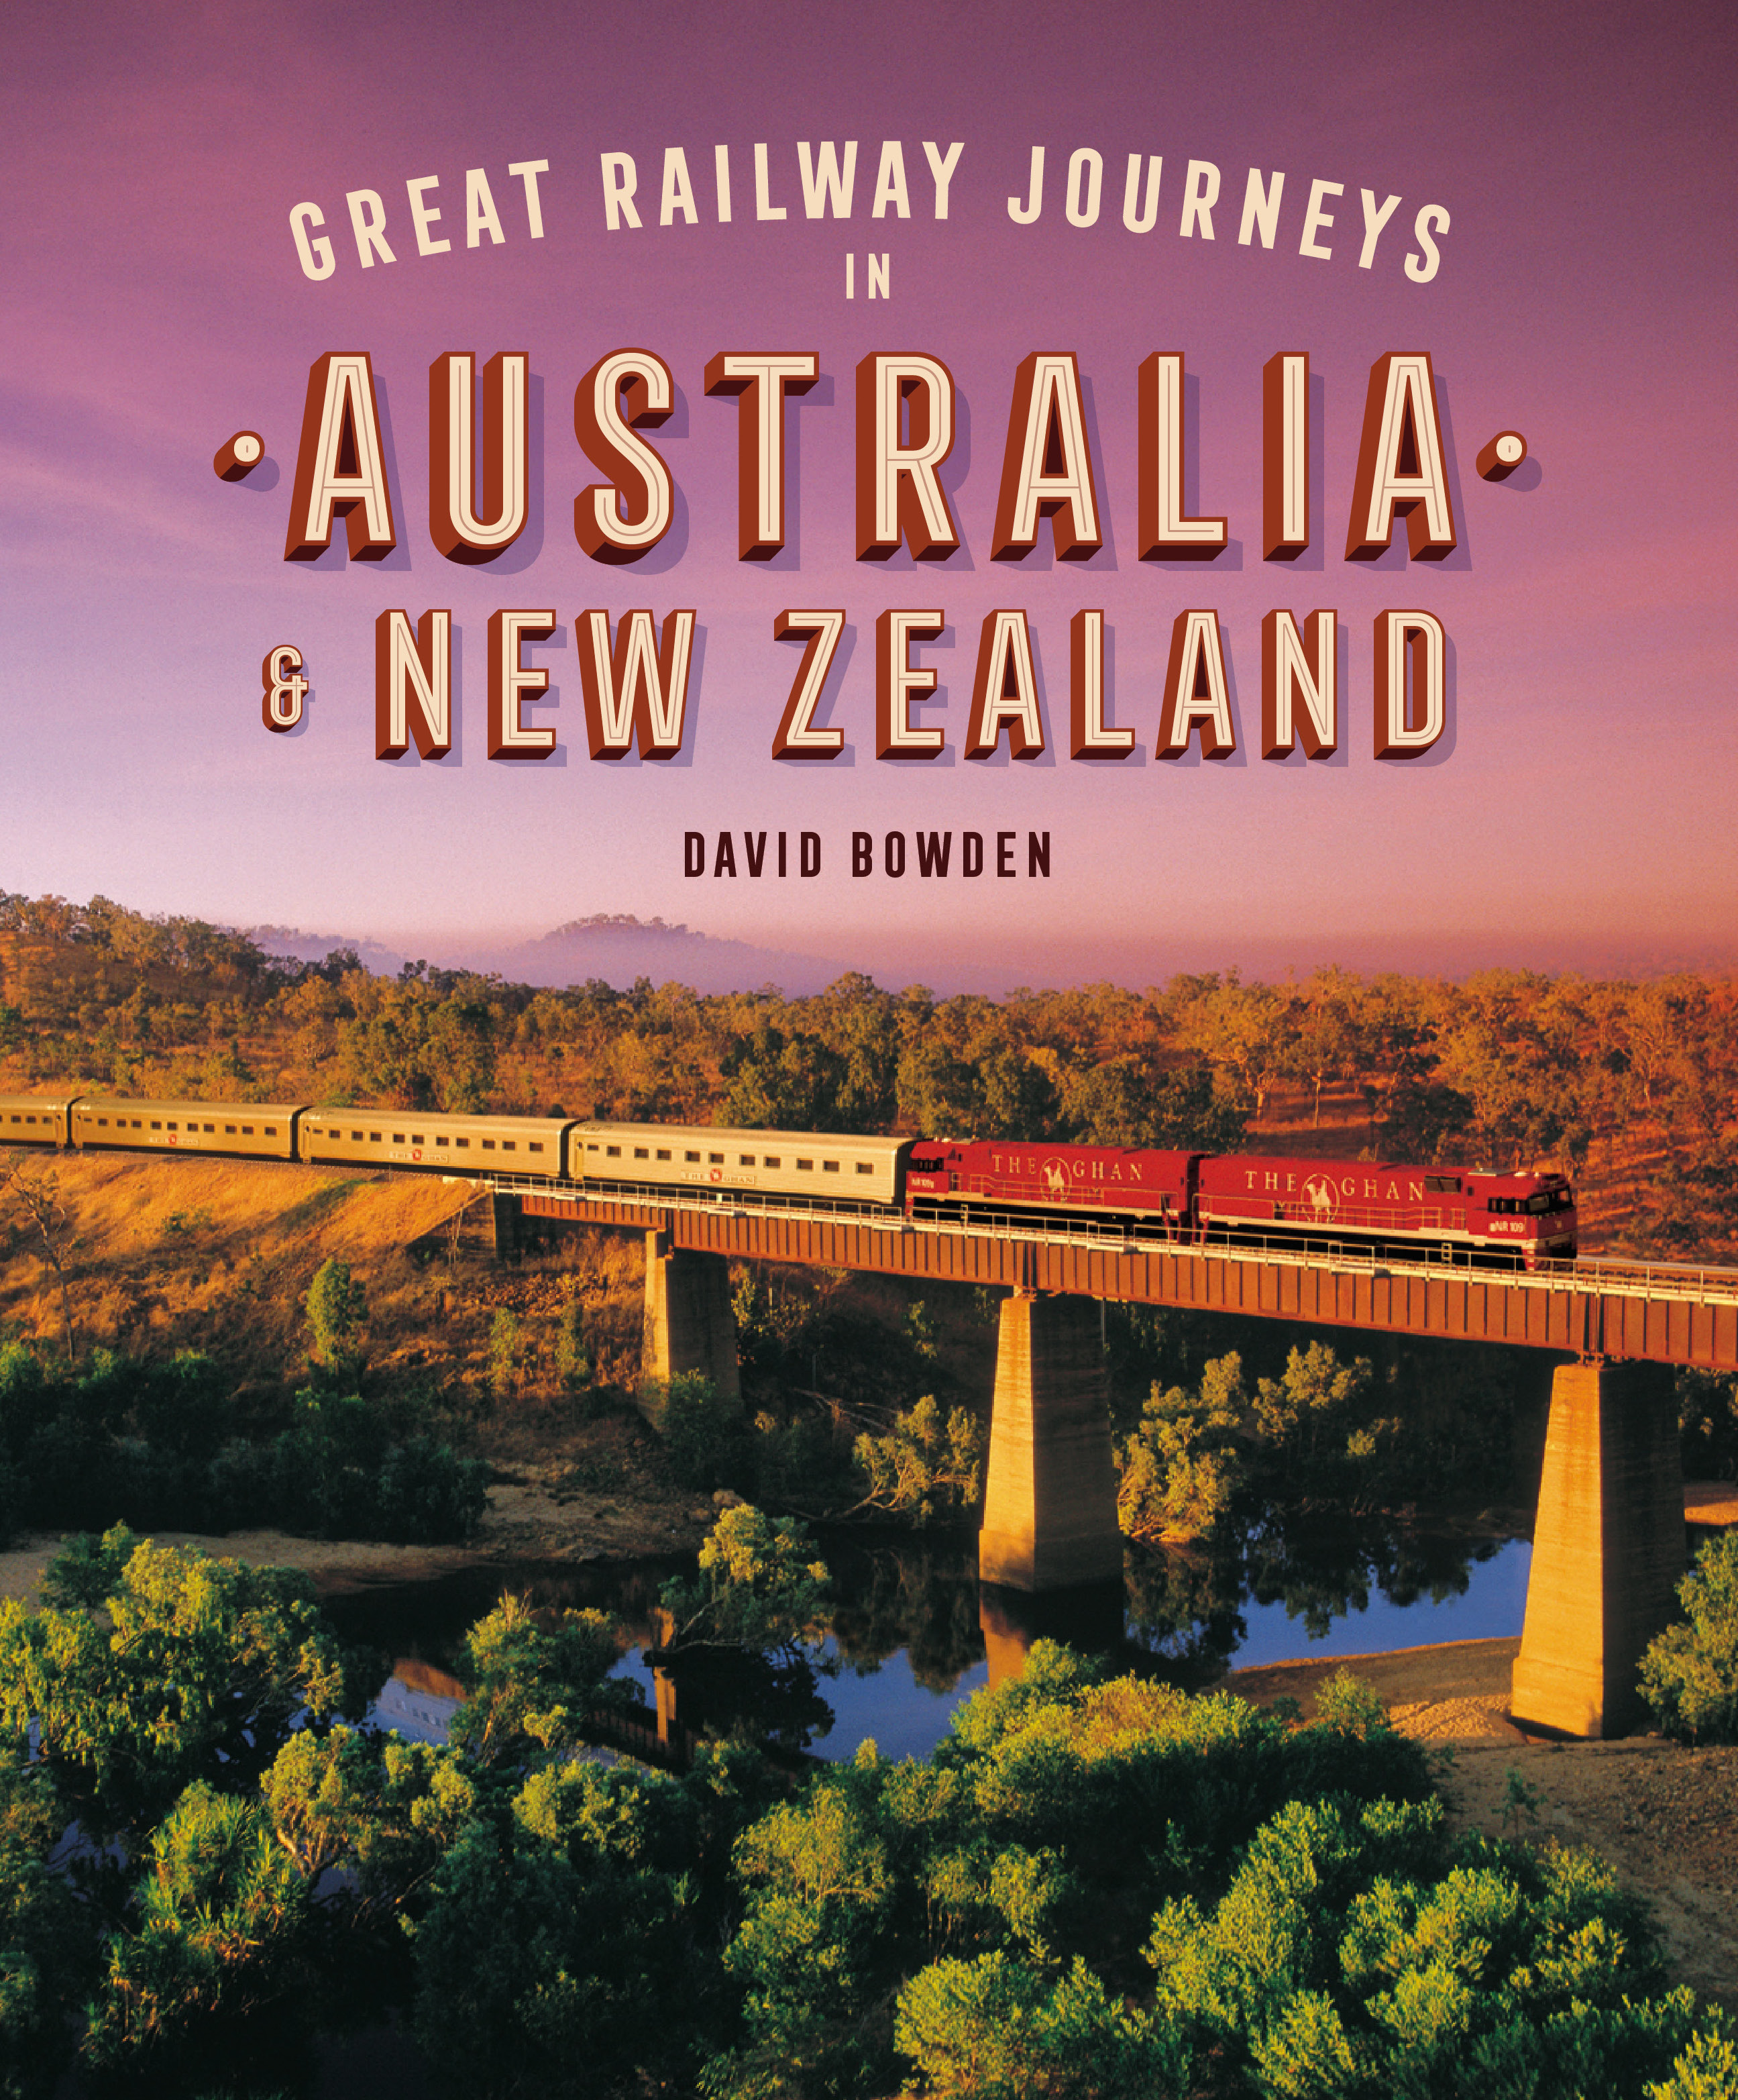 Great Railway Journeys in Australia & New Zealand